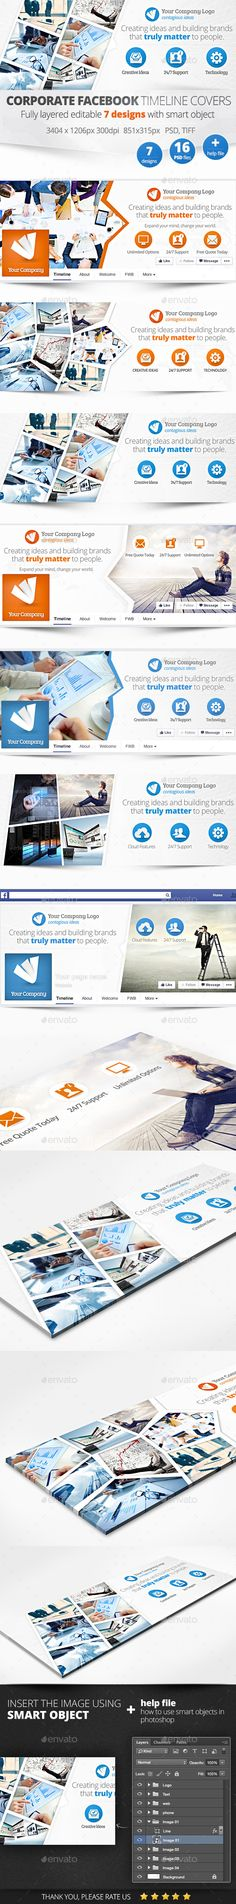 Corporate Facebook Timeline Covers Templates PSD #design Download: http://graphicriver.net/item/corporate-facebook-timeline-covers-/11211203?ref=ksioks